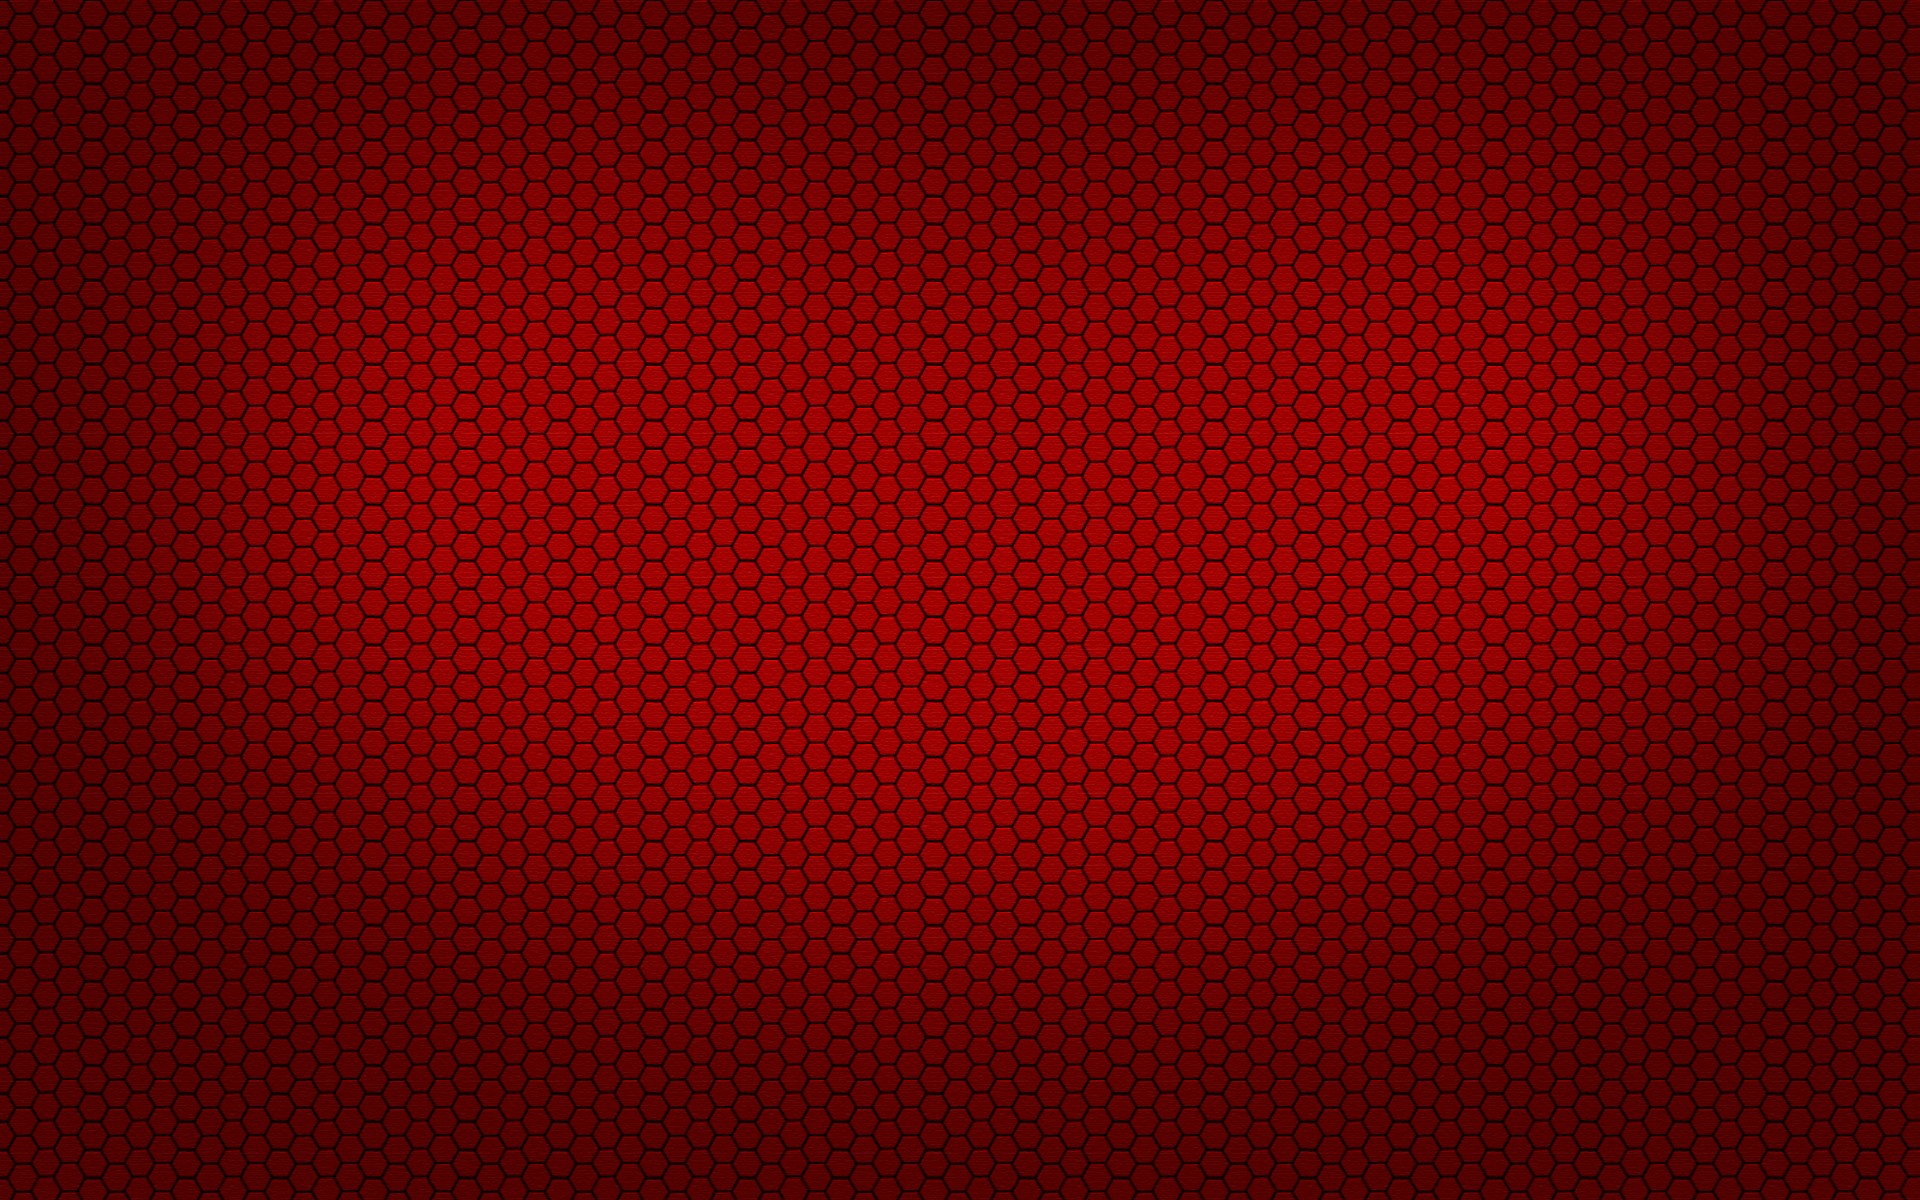 Red Wallpapers Desktop Background